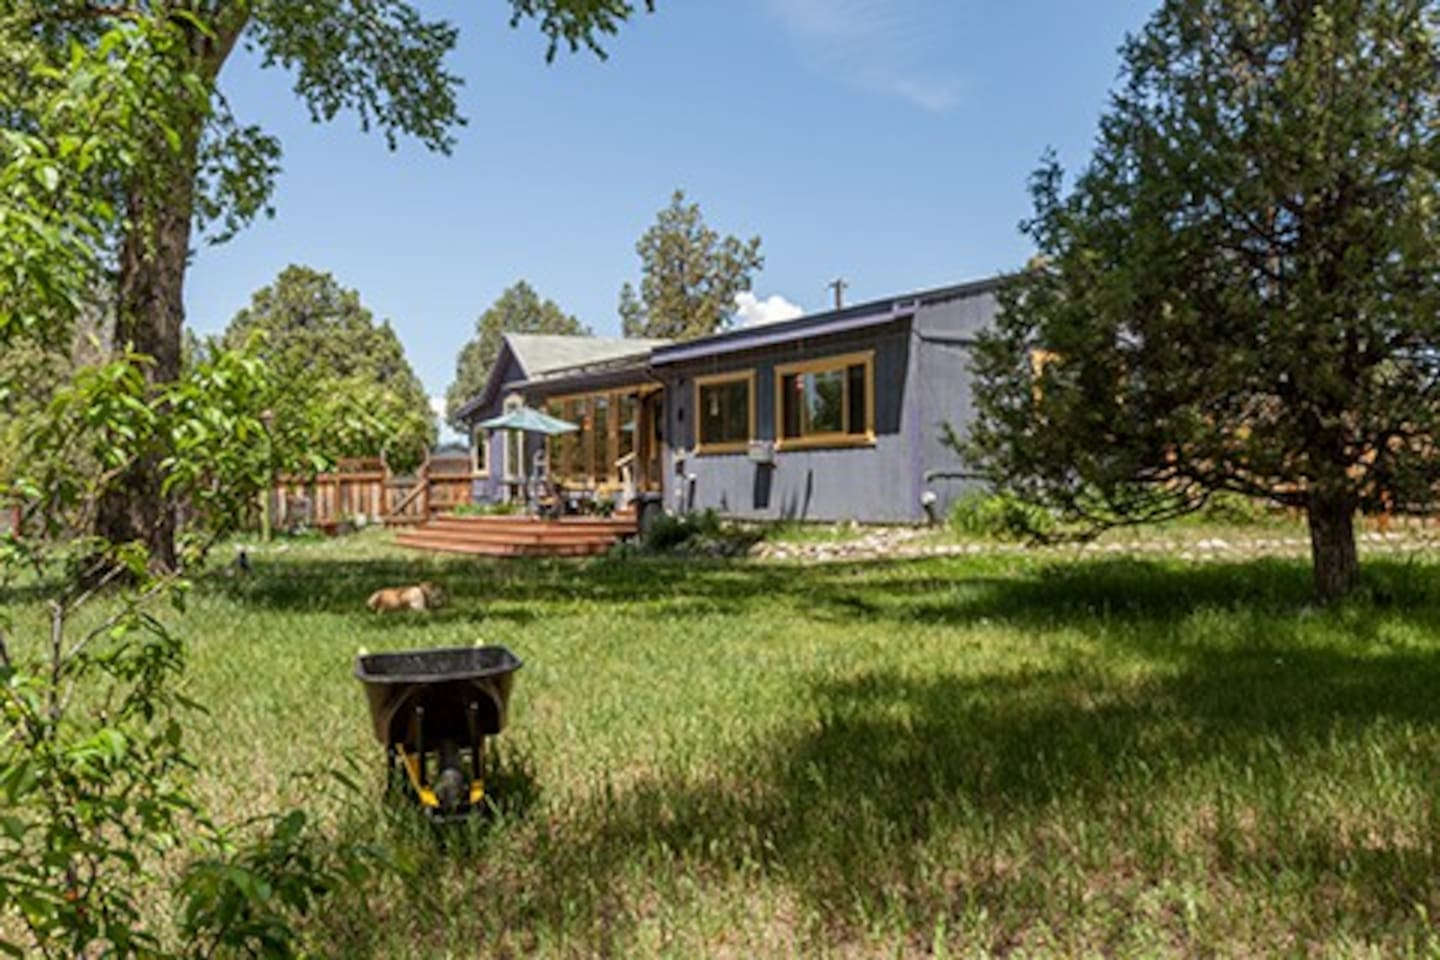 Creekside view of South-facing porch. Fenced yard plus acreage looking into Cottonwood trees, garden and open space. Does not feel like you are in town